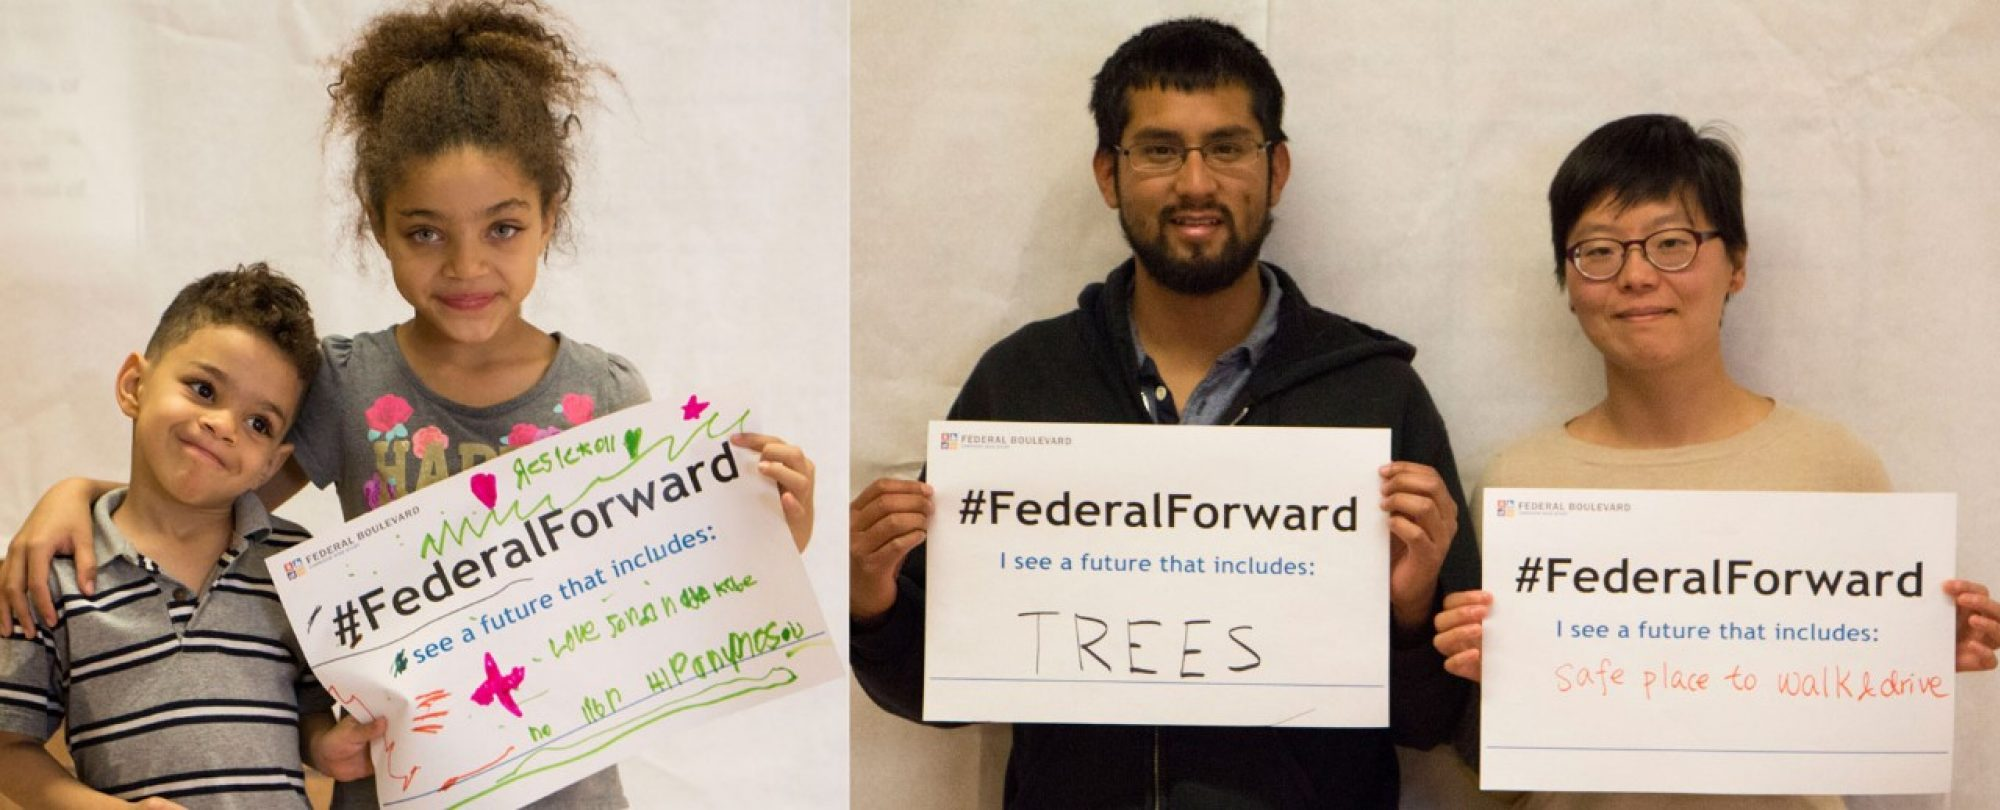 kids holding FederalForward sign; couple with signs for